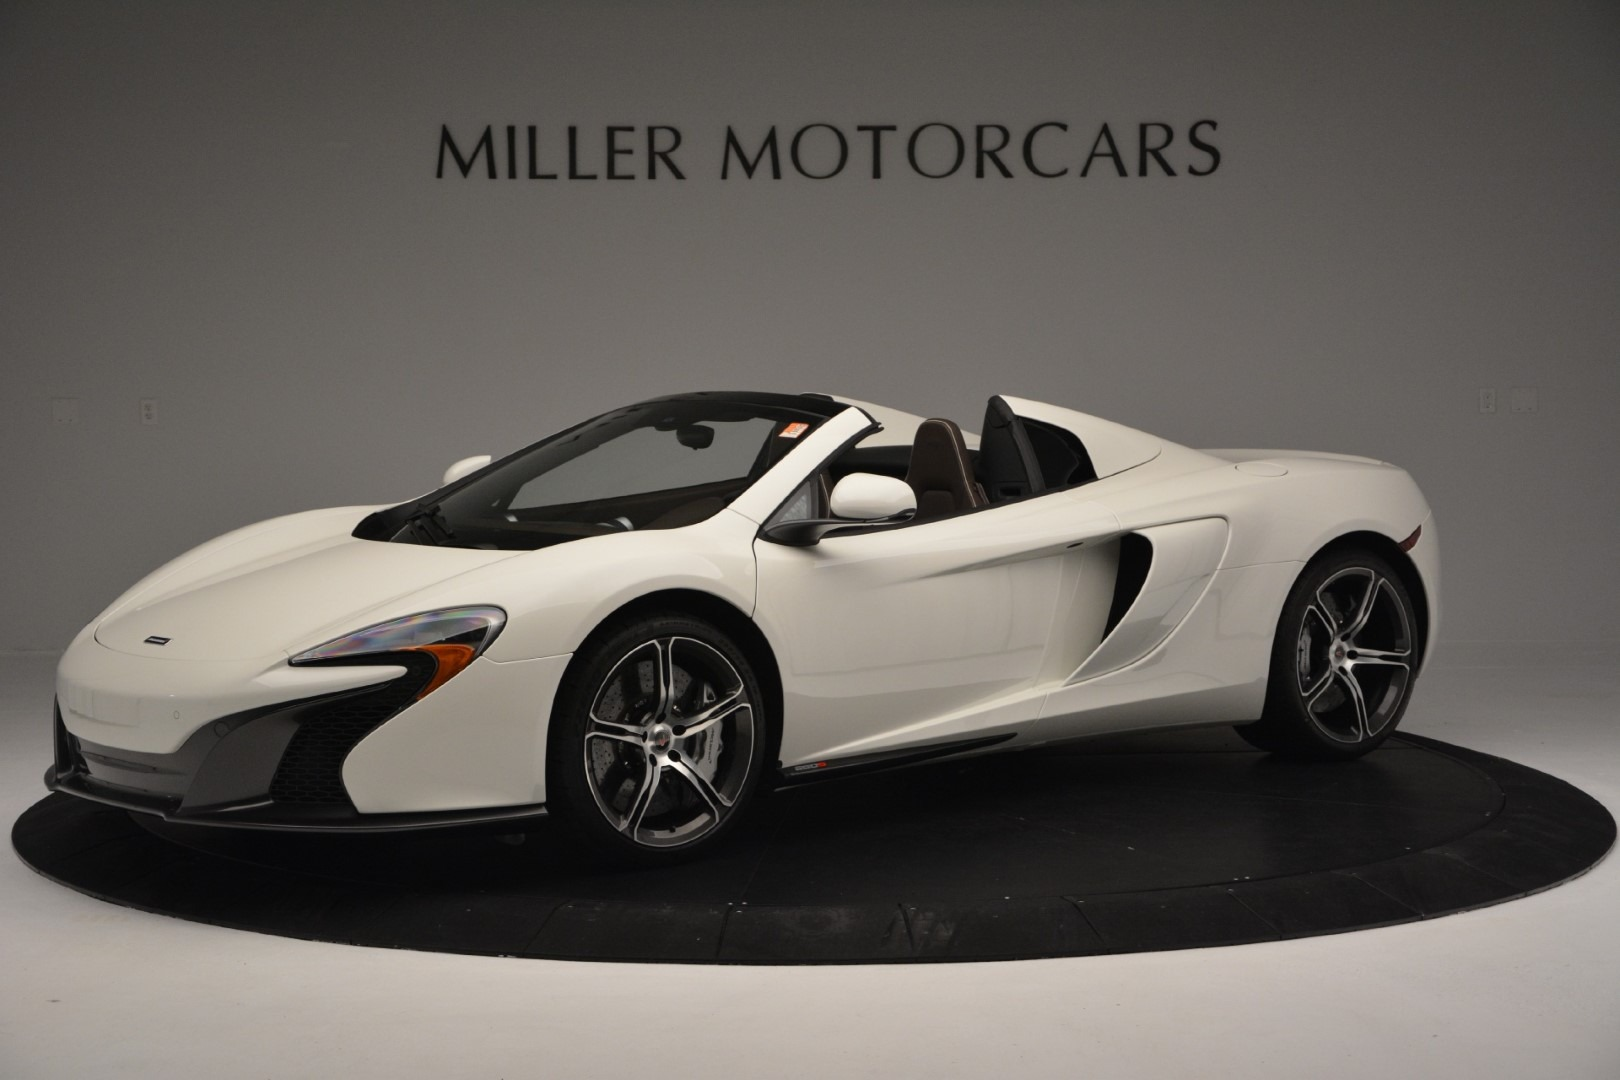 Used 2015 McLaren 650S Convertible for sale Sold at Bugatti of Greenwich in Greenwich CT 06830 1